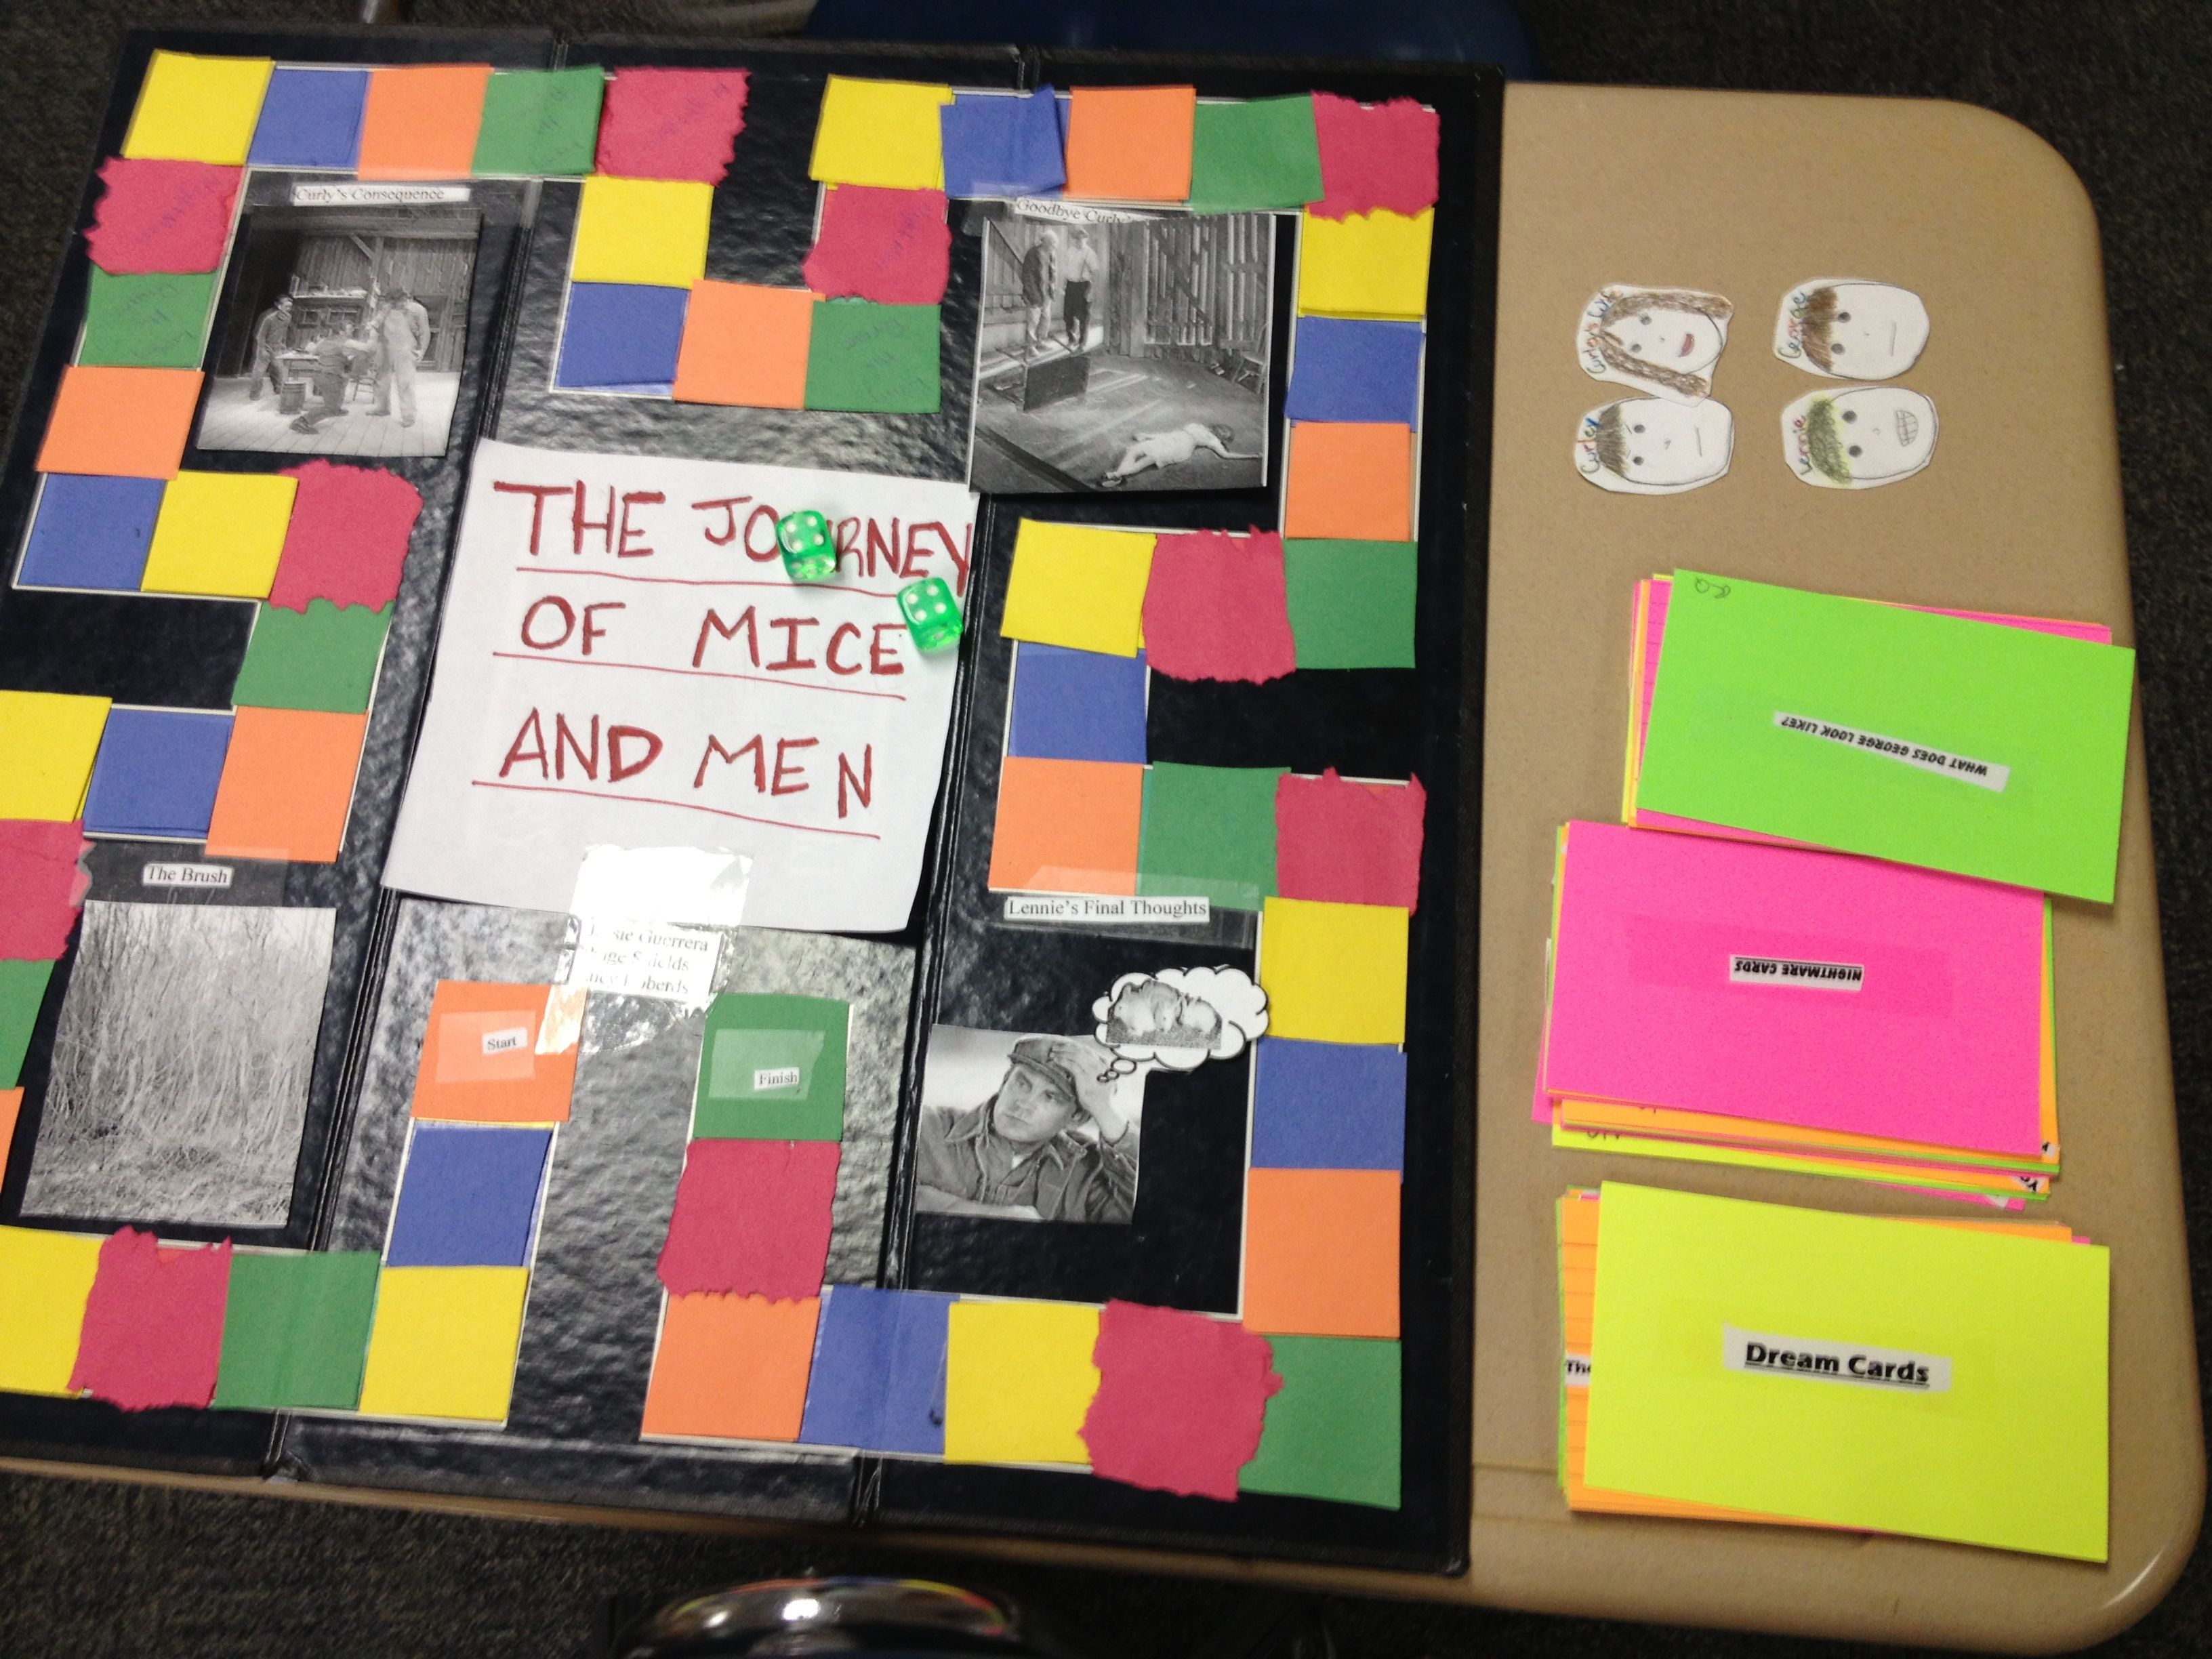 of mice and men john steinbeck character analysis tri folds enf of year board game project